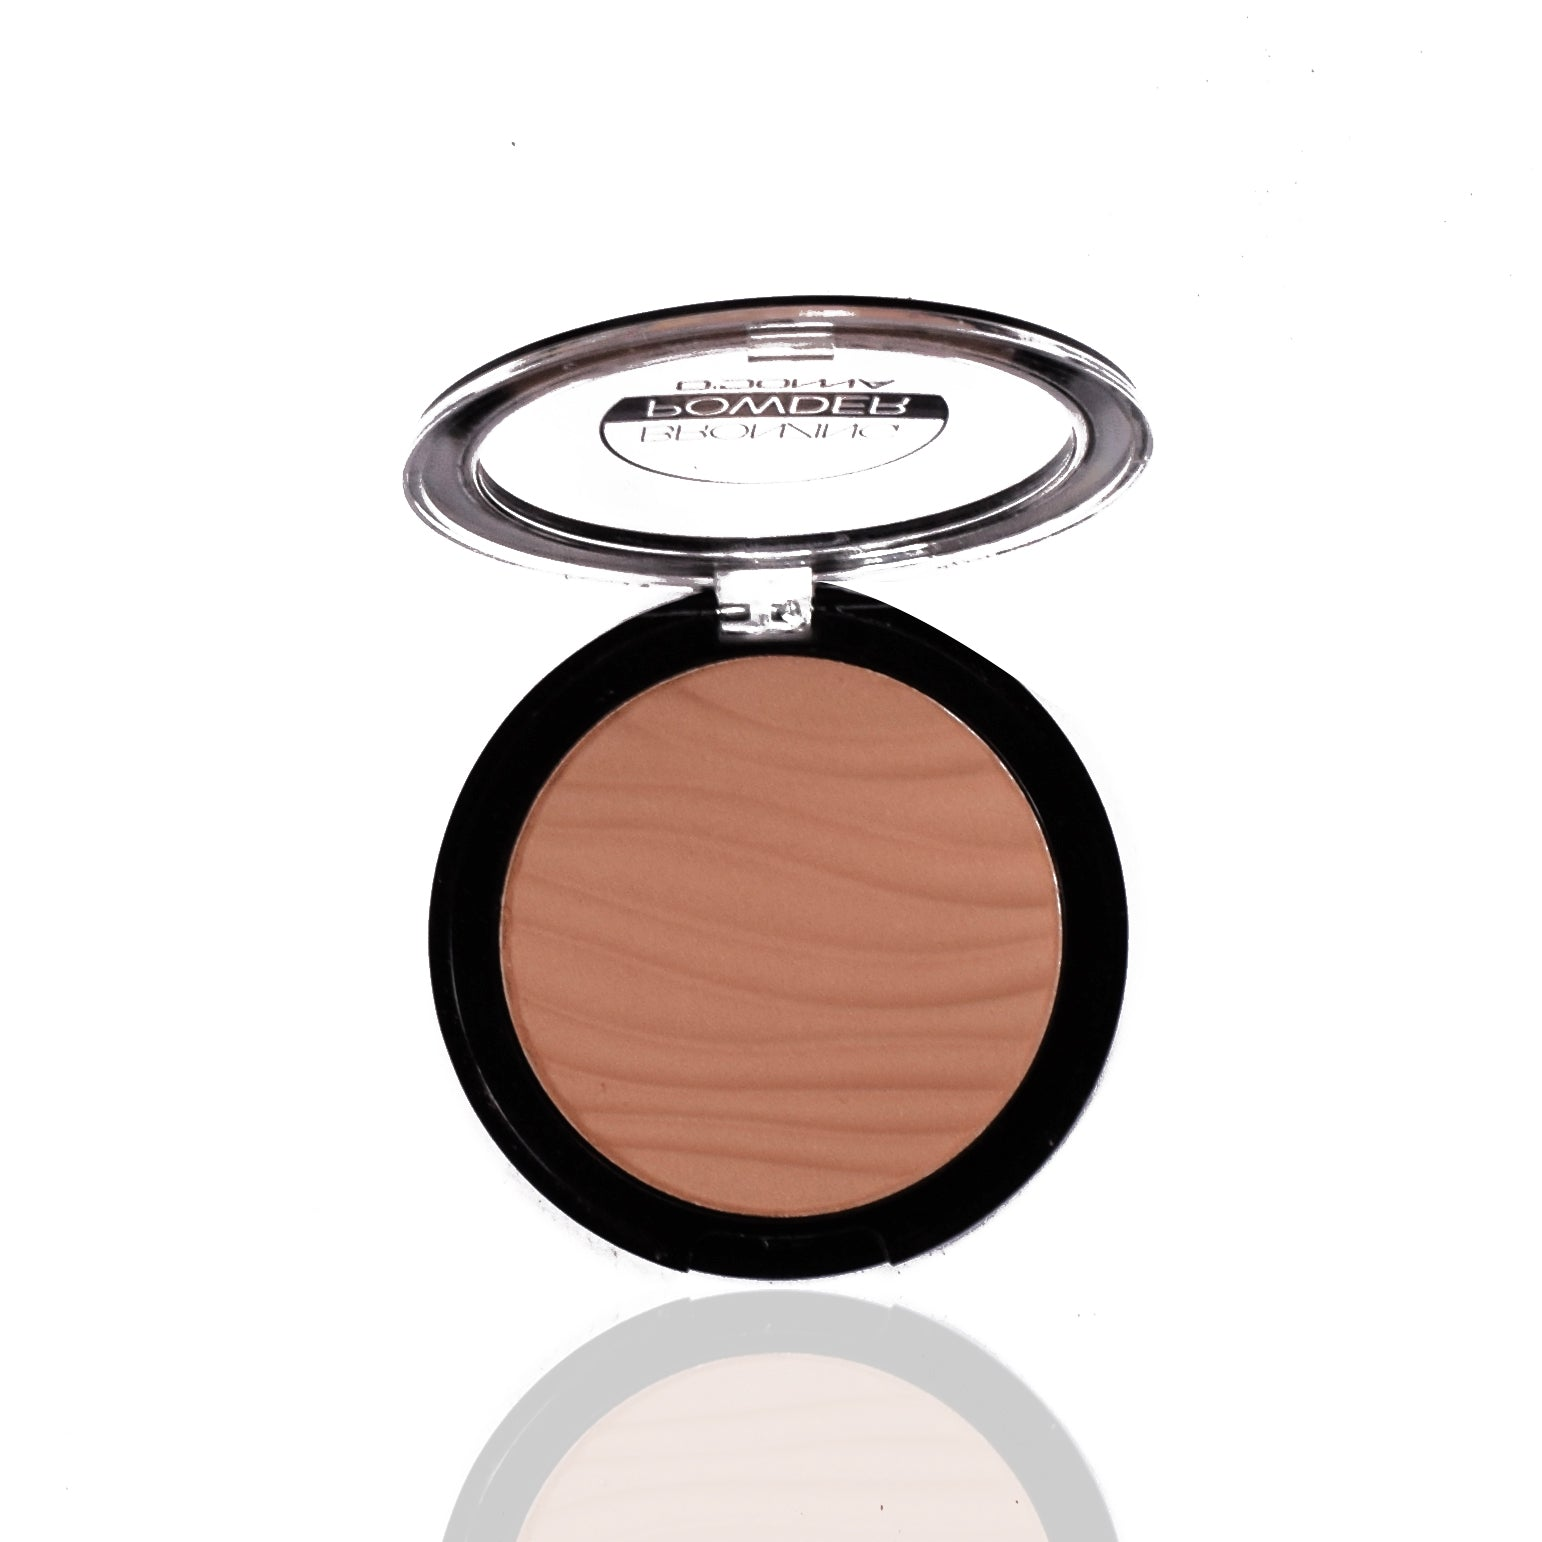 Ddonna Face Powder For Women-NA5331